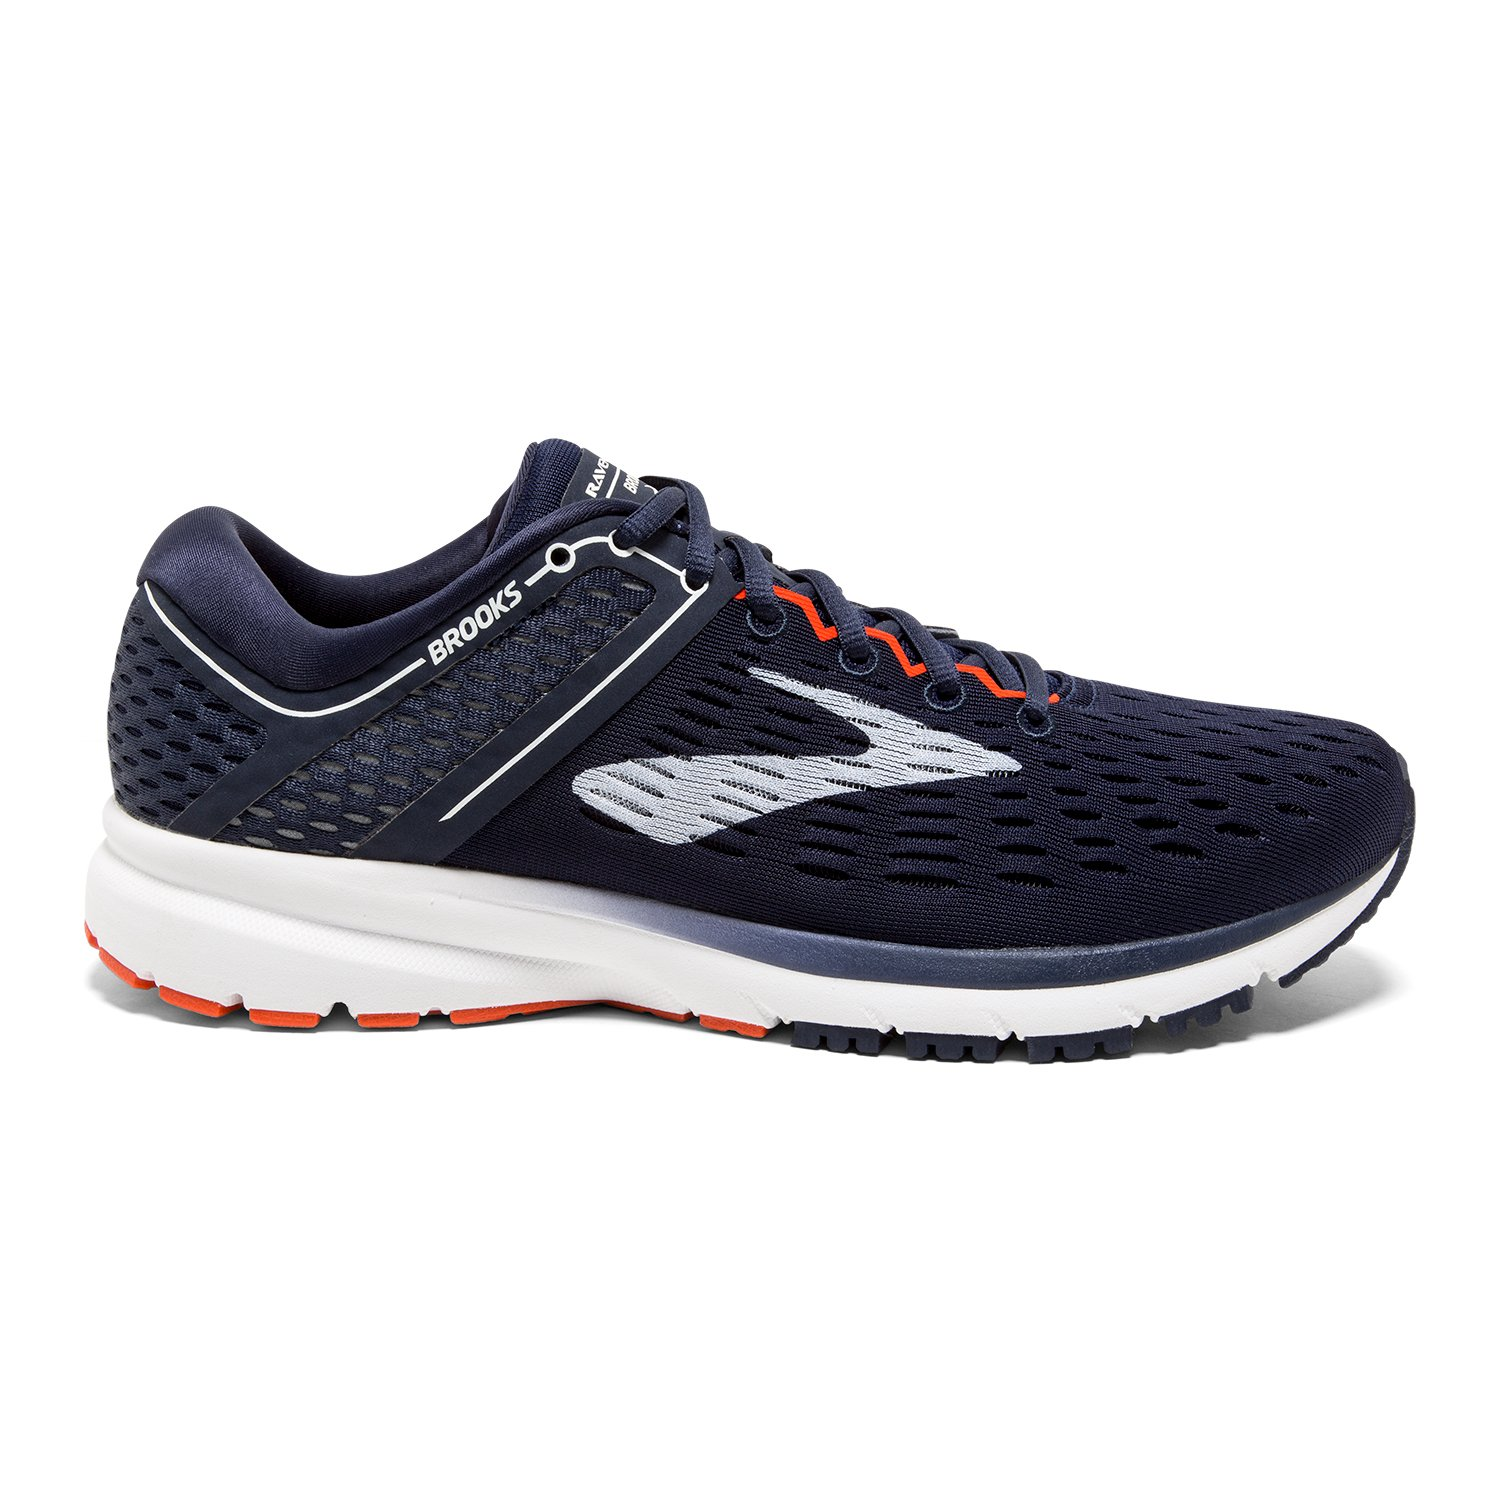 Navy White orange Brooks Men's Ravenna 9 Running shoes